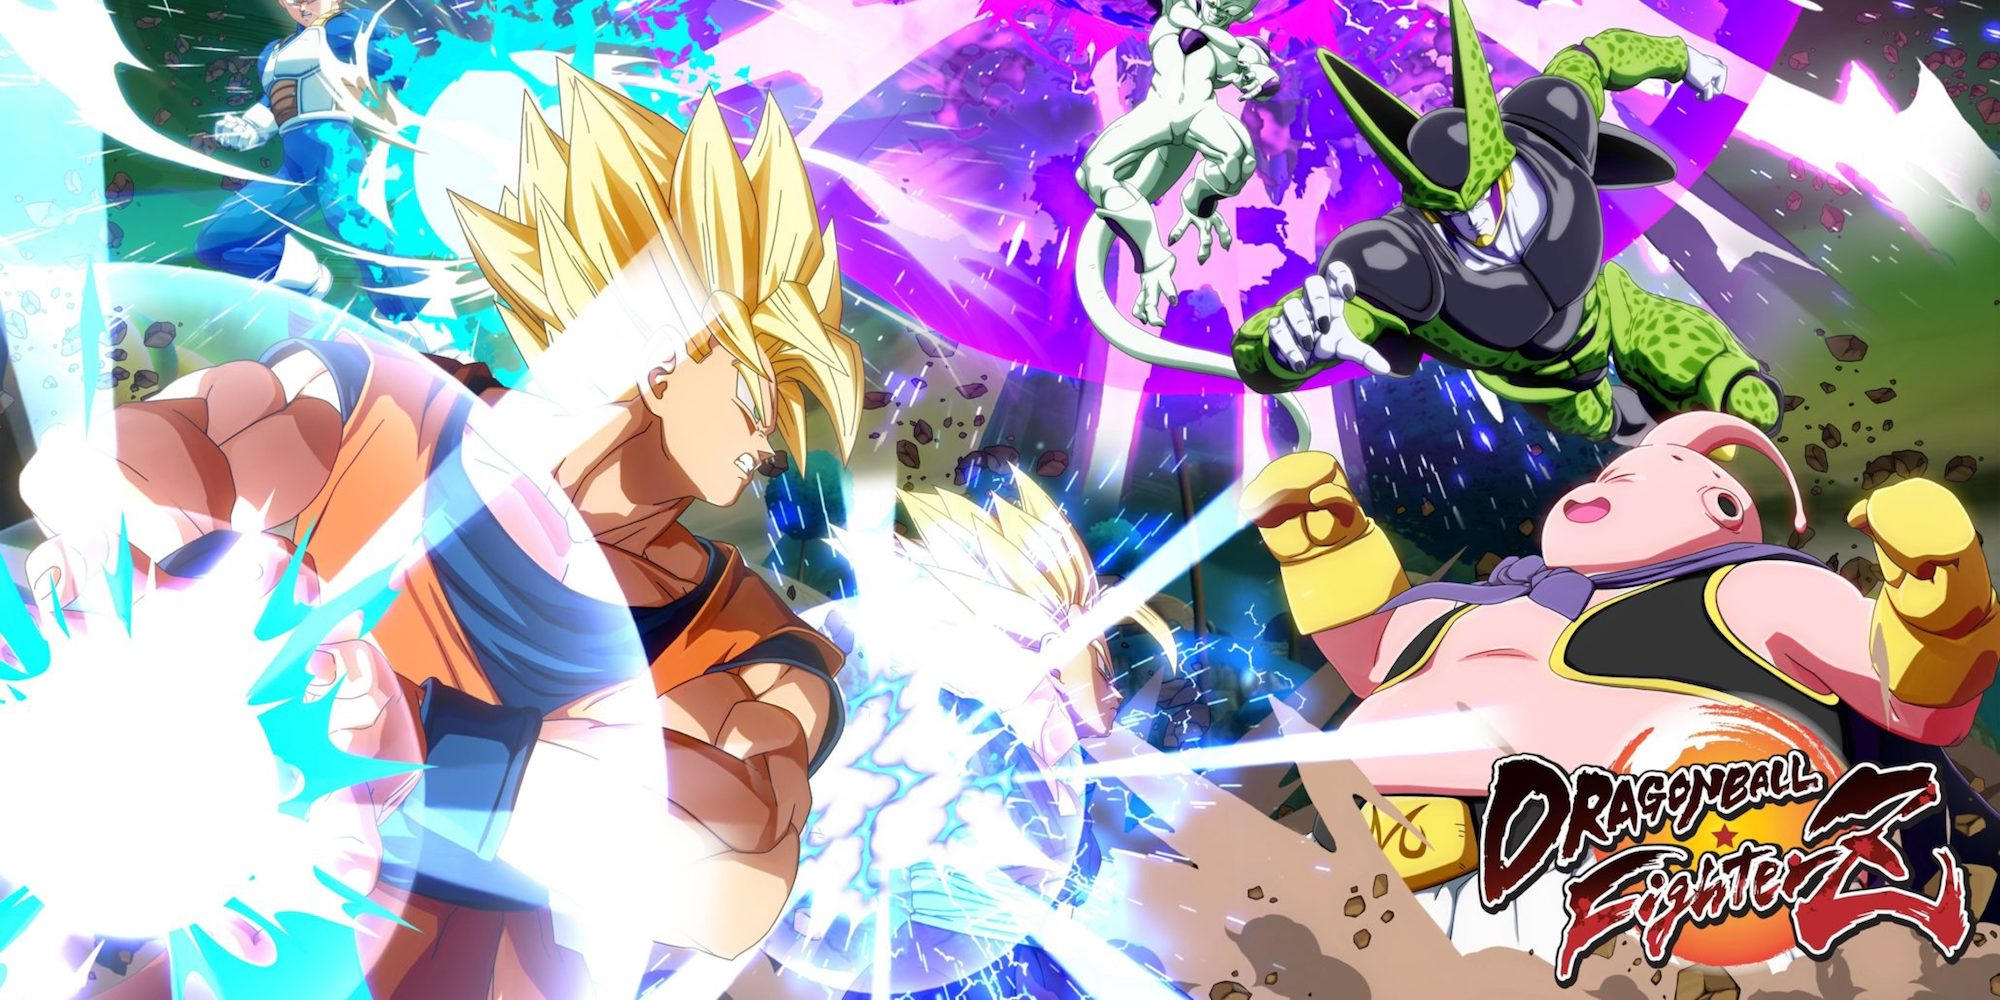 Nintendo eShop sale from $1: DRAGON BALL, NARUTO, Ghostbusters, and many more - 9to5Toys